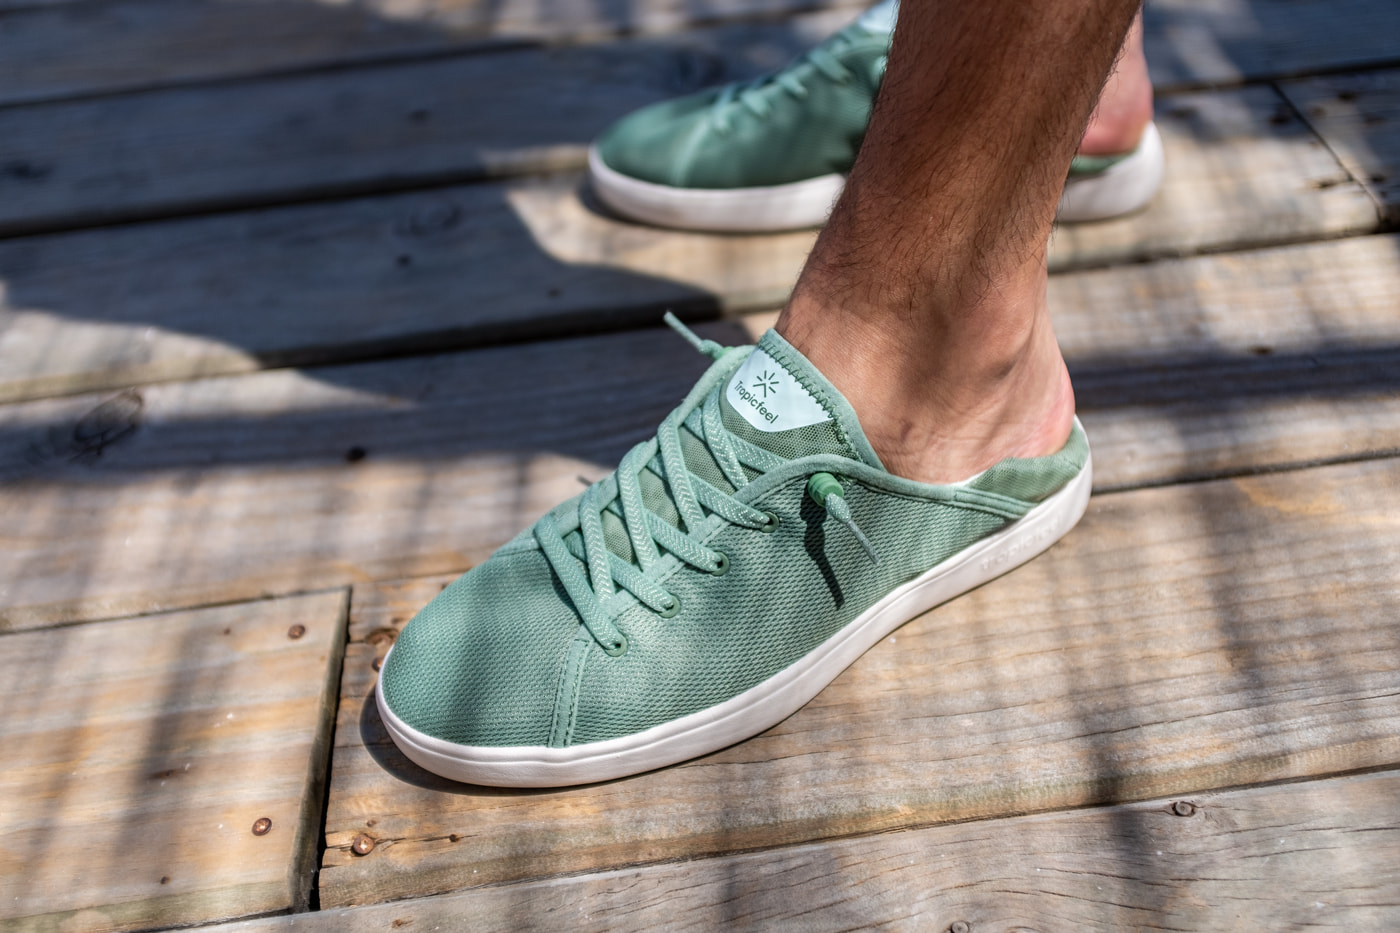 Best Travel Shoes for Europe